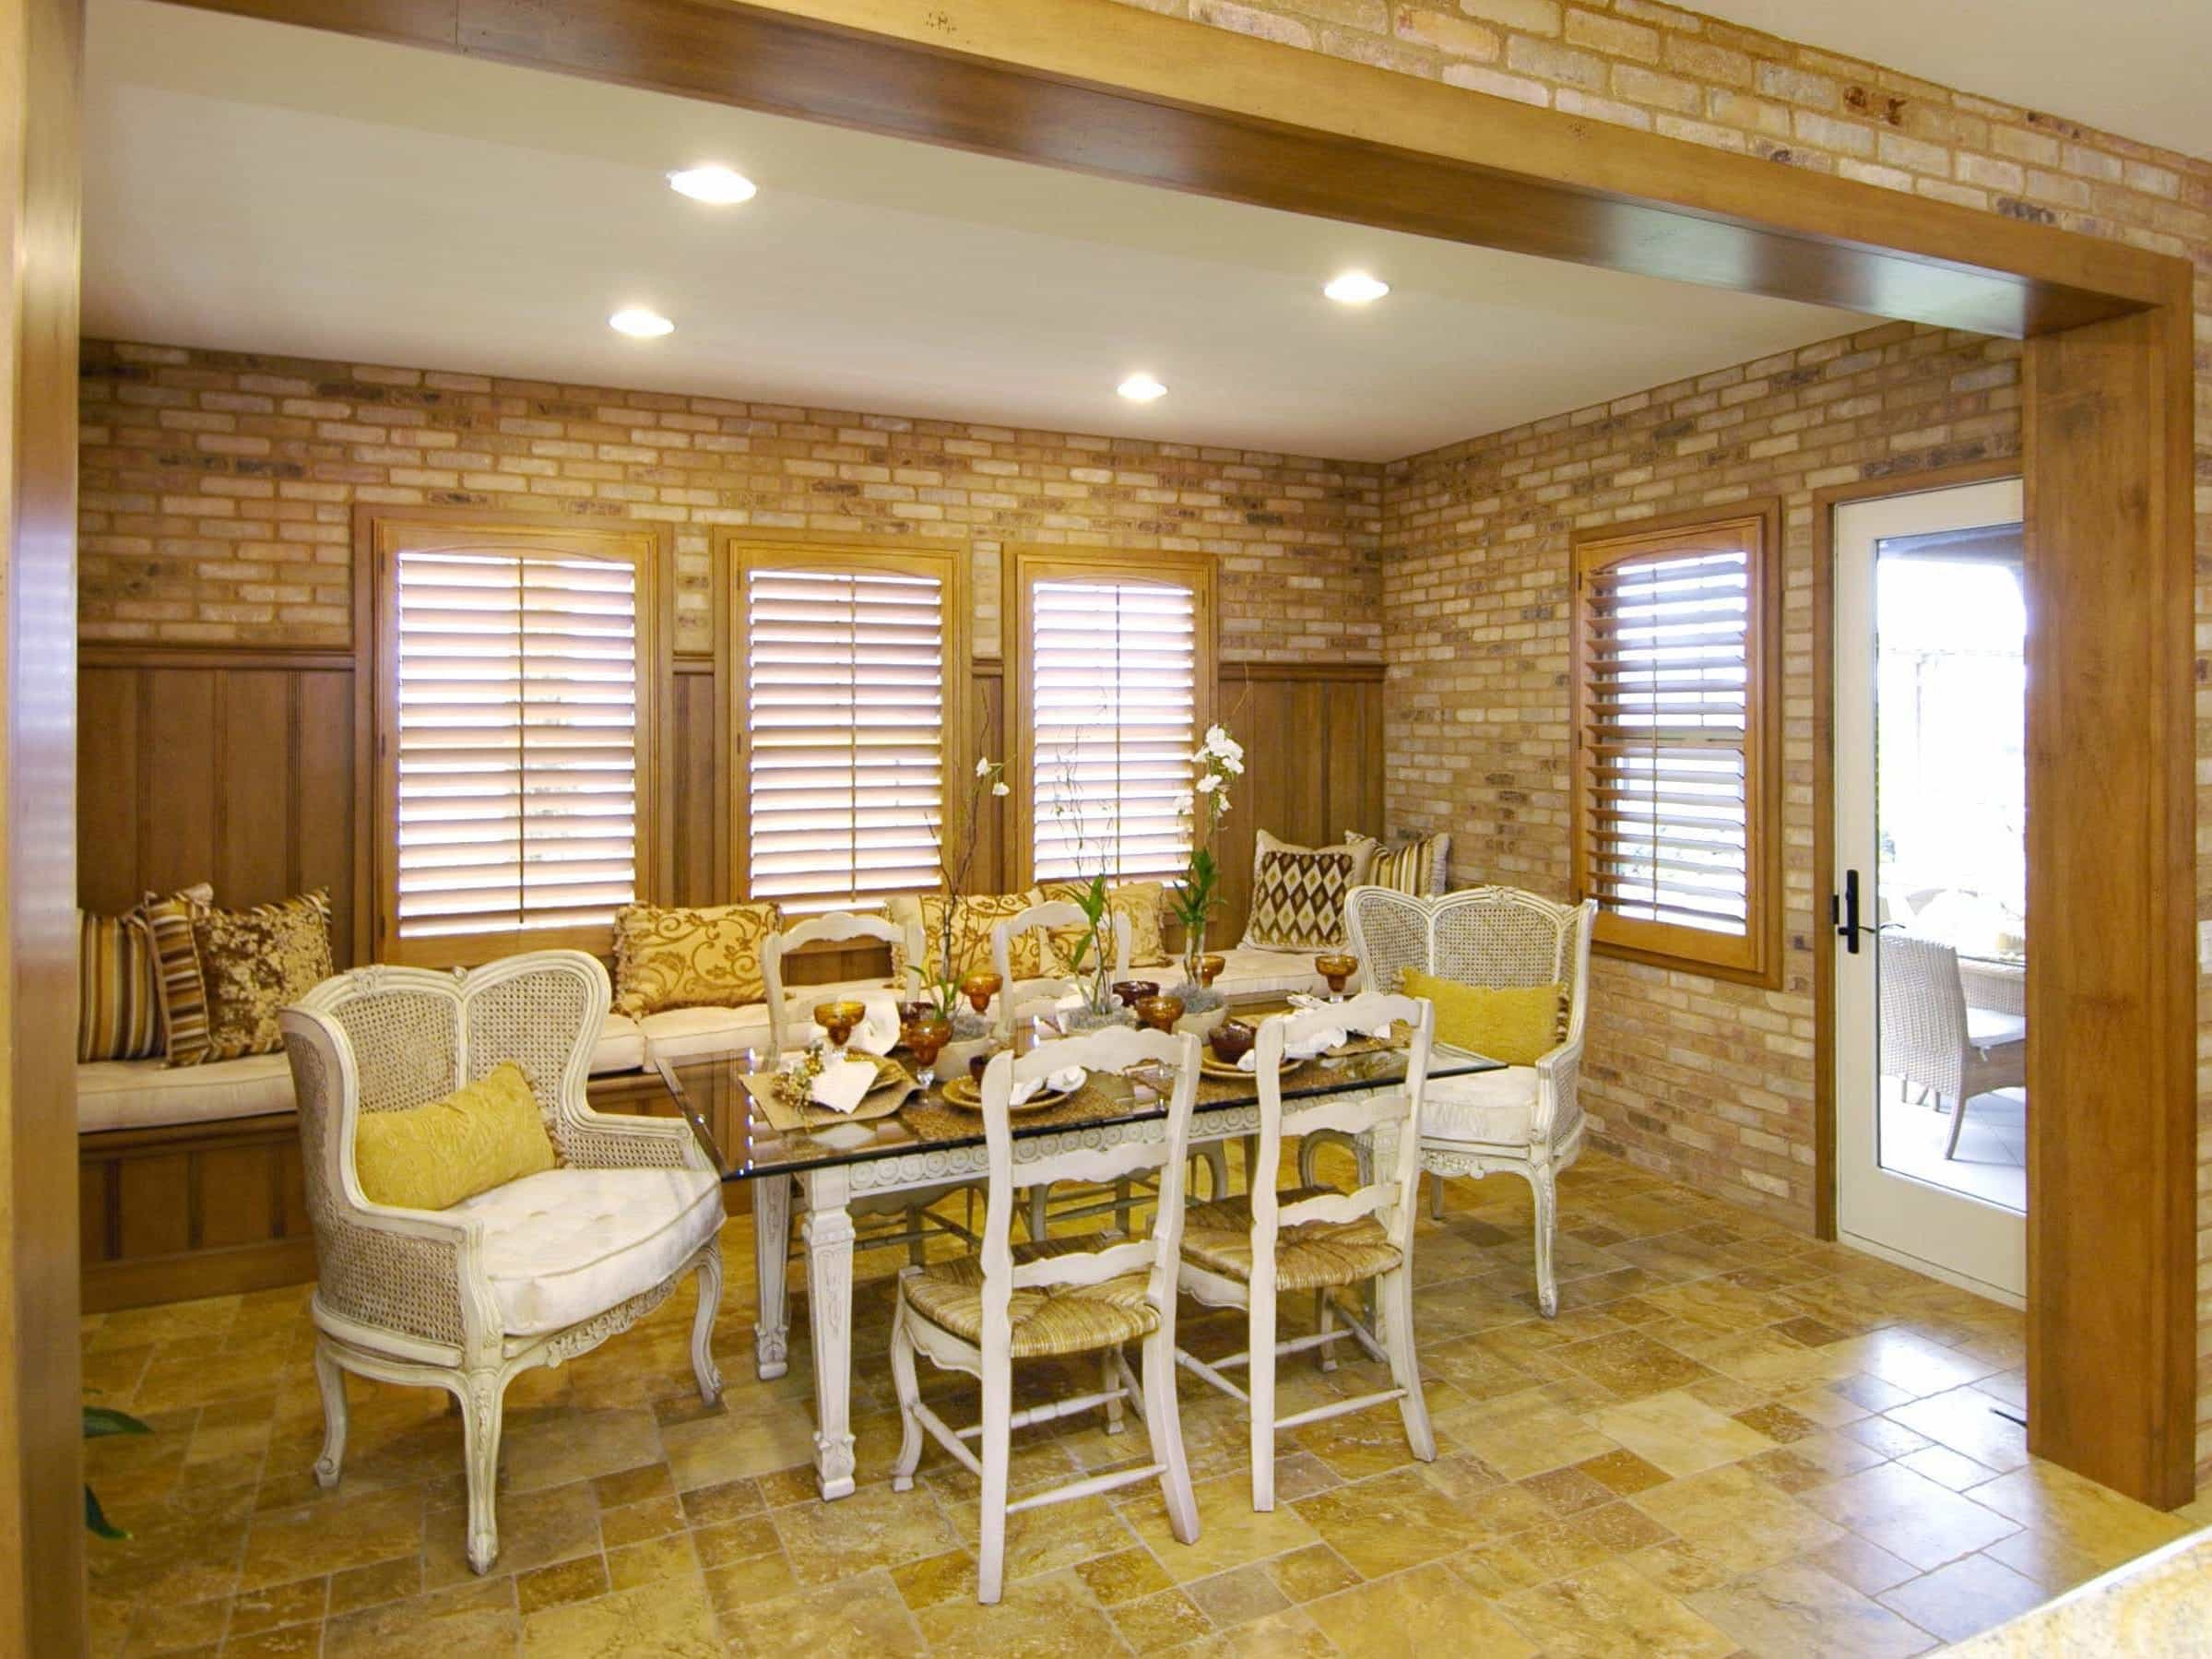 Cottage Style Breakfast Room With Brick Walls (Image 8 of 30)